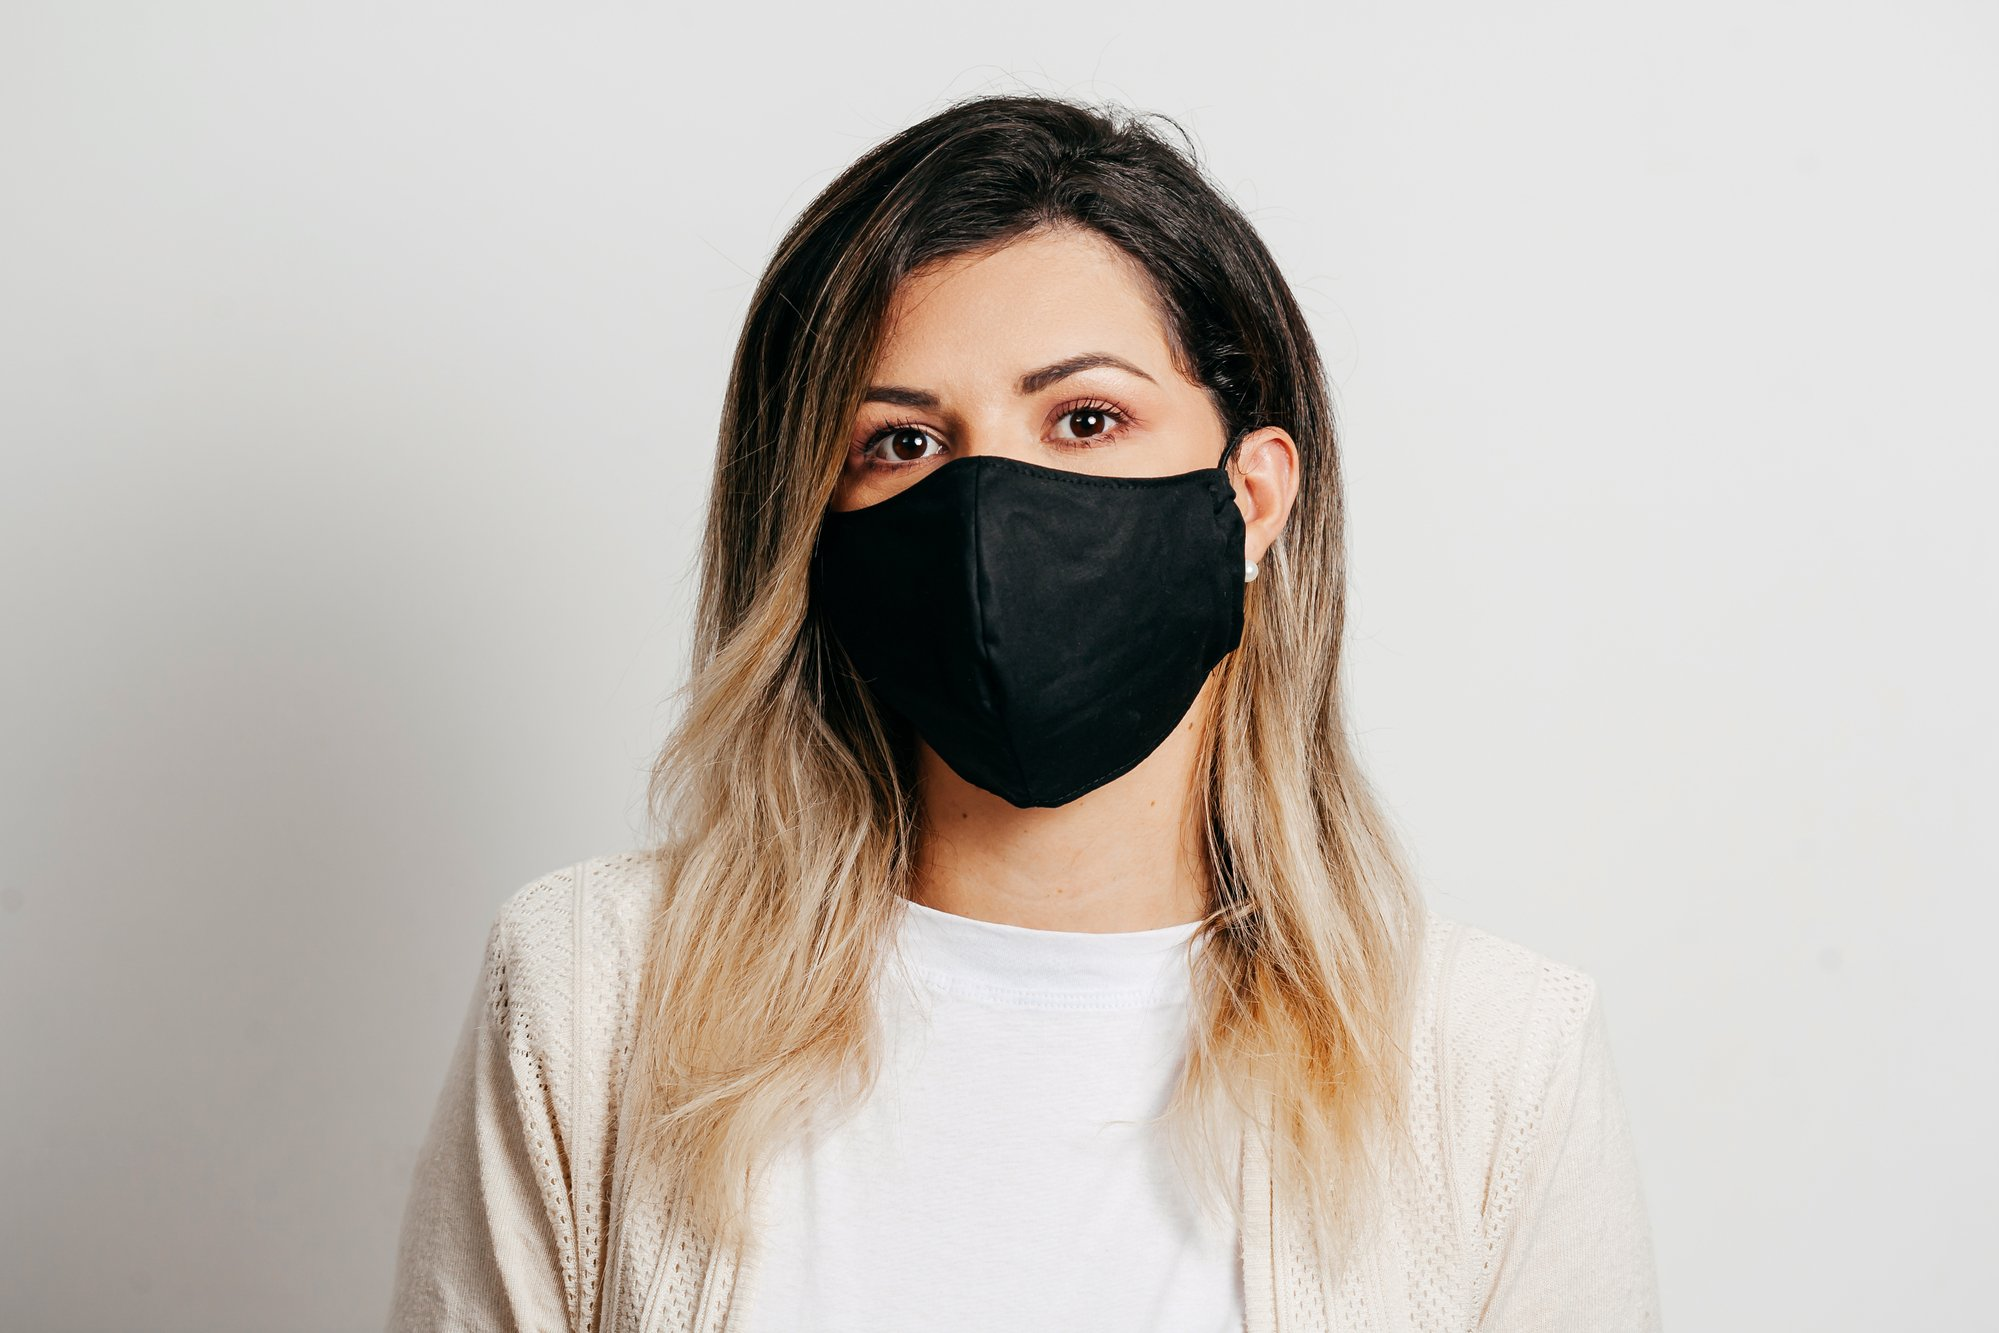 Portrait of woman wearing handmade cotton fabric face mask. Protection against COVID-19